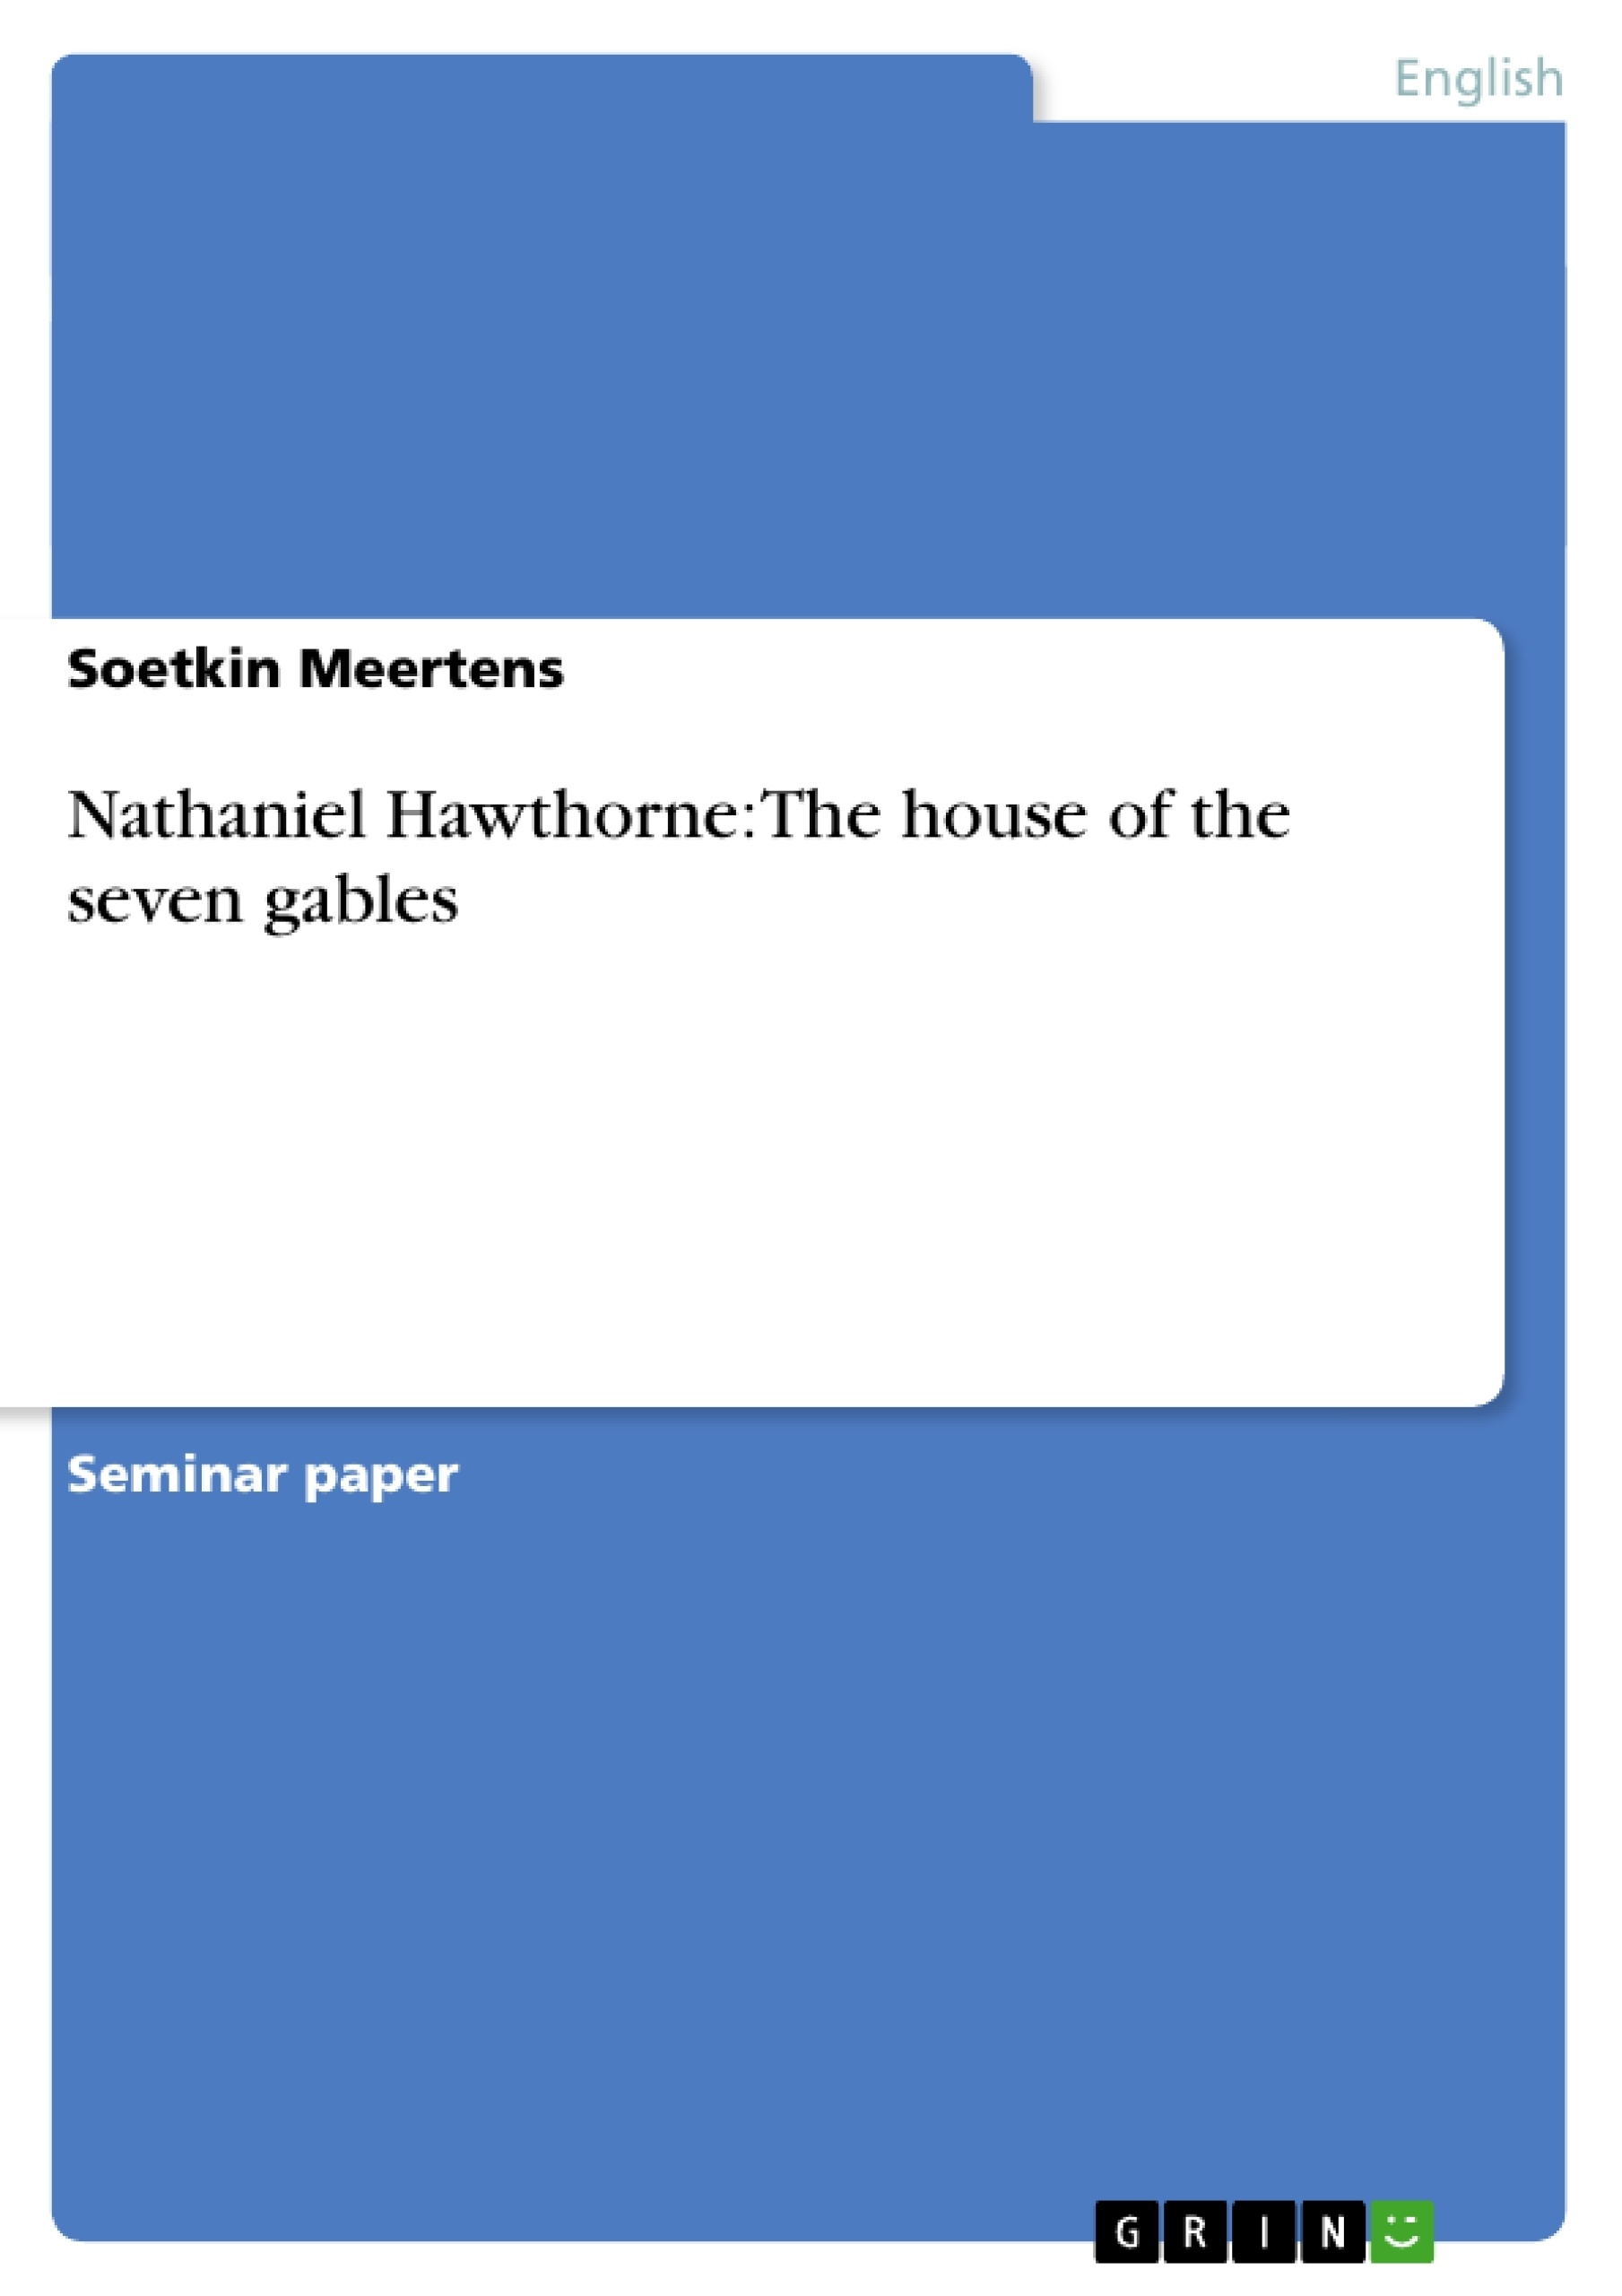 nathaniel hawthorne the house of the seven gables publish your nathaniel hawthorne the house of the seven gables publish your master s thesis bachelor s thesis essay or term paper